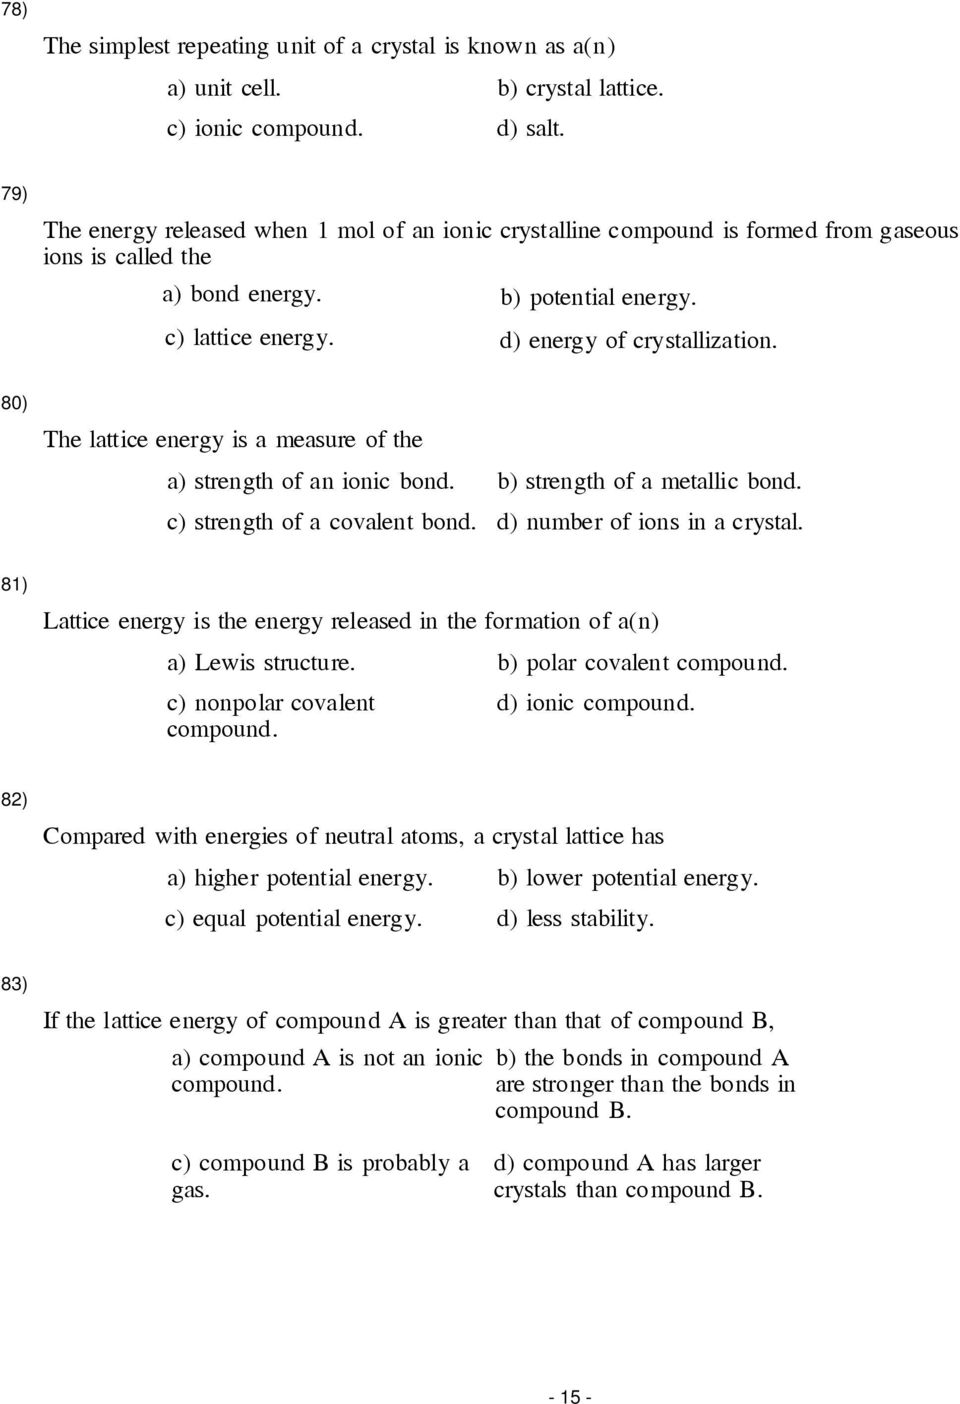 80) The lattice energy is a measure of the a) strength of an ionic bond. c) strength of a covalent bond. b) strength of a metallic bond. d) number of ions in a crystal.